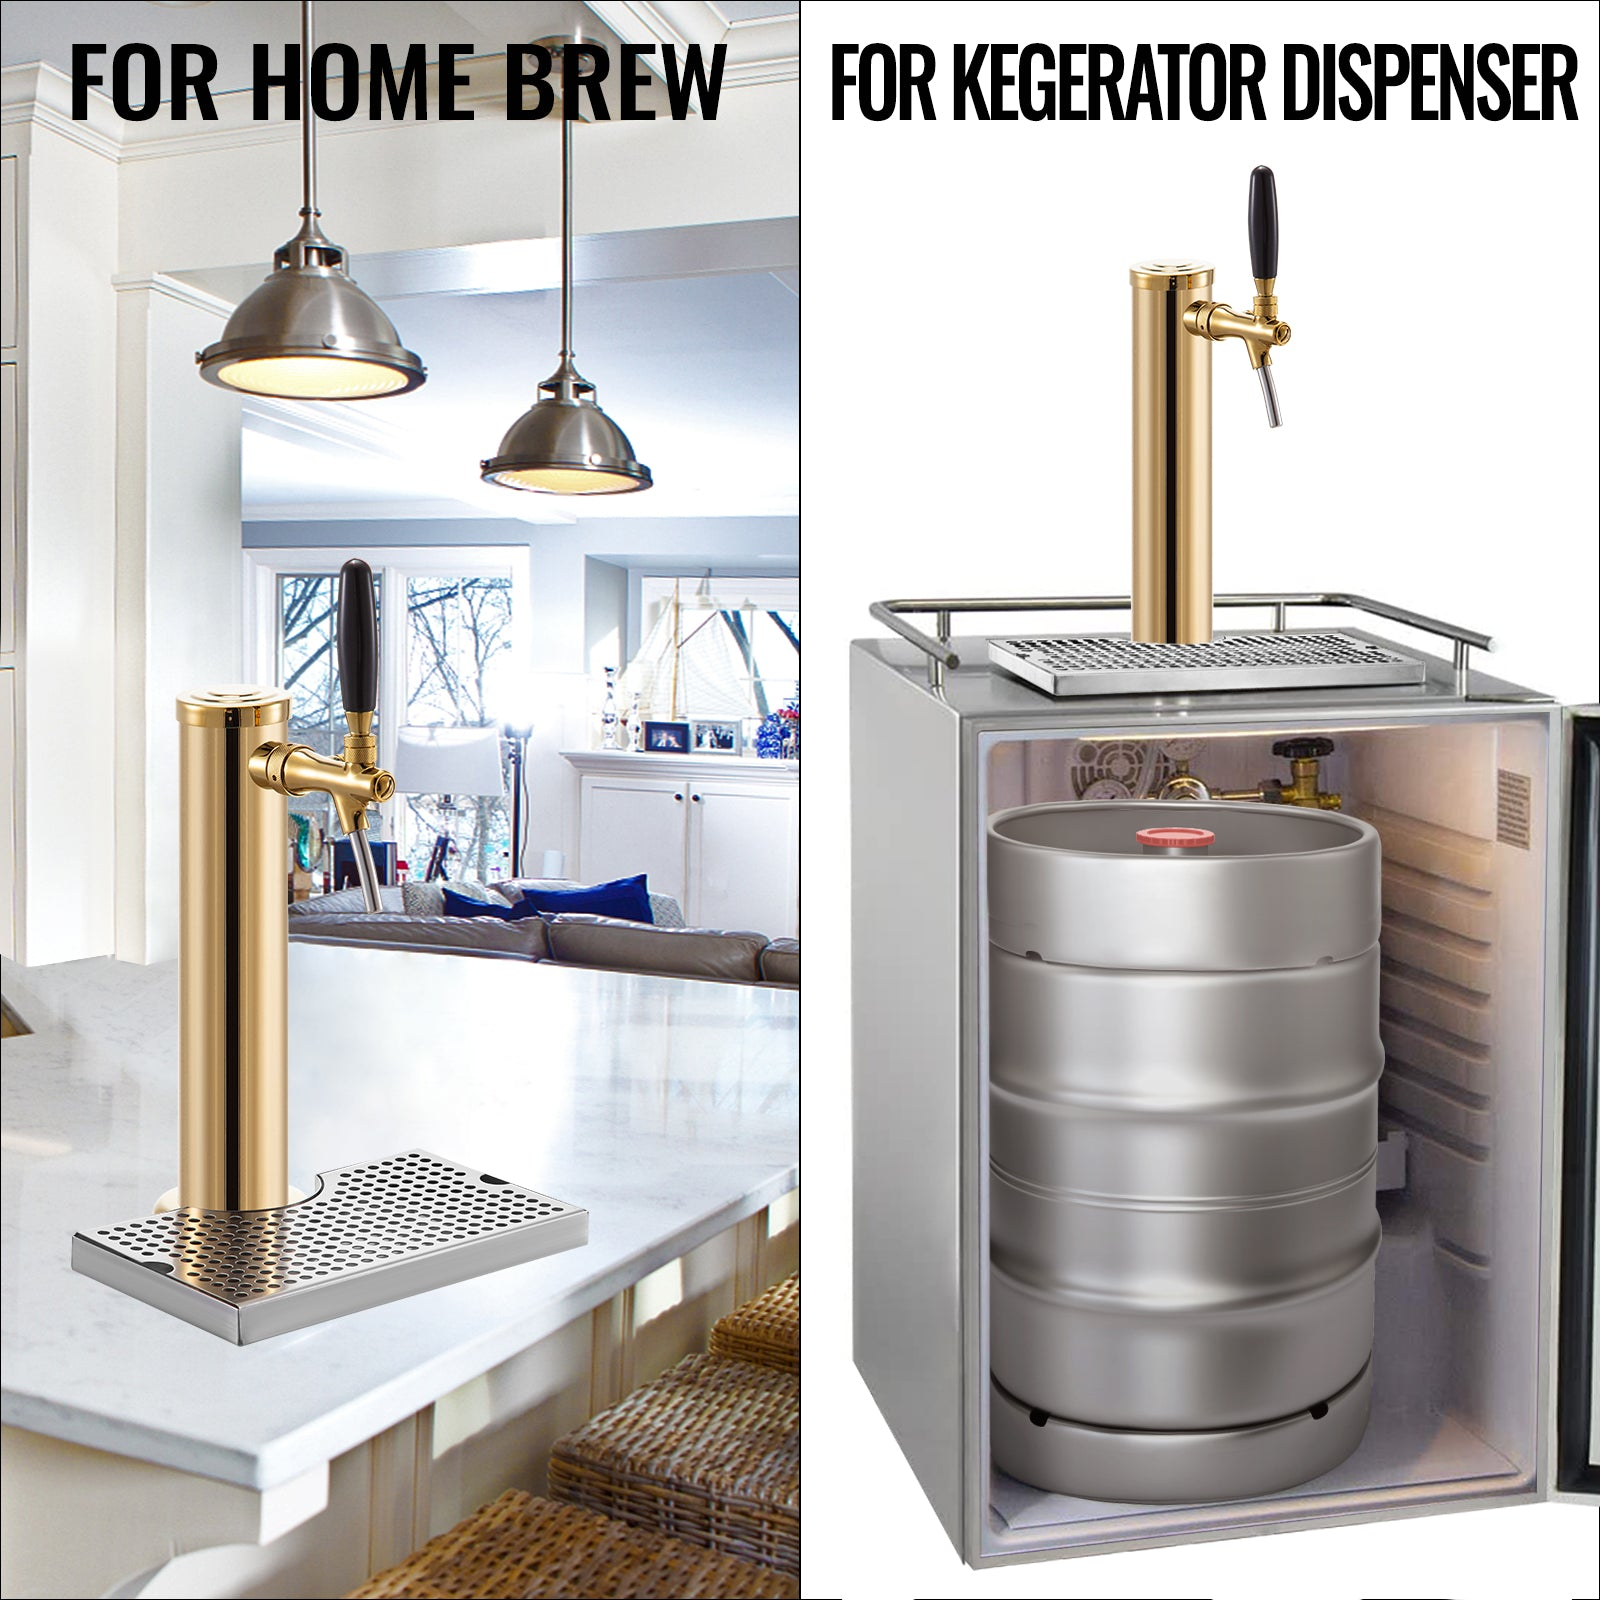 Vevor Beer Tower Kegerator Tower Pvd Coated Keg Tower 1 Adjustable Tap Drip Tray